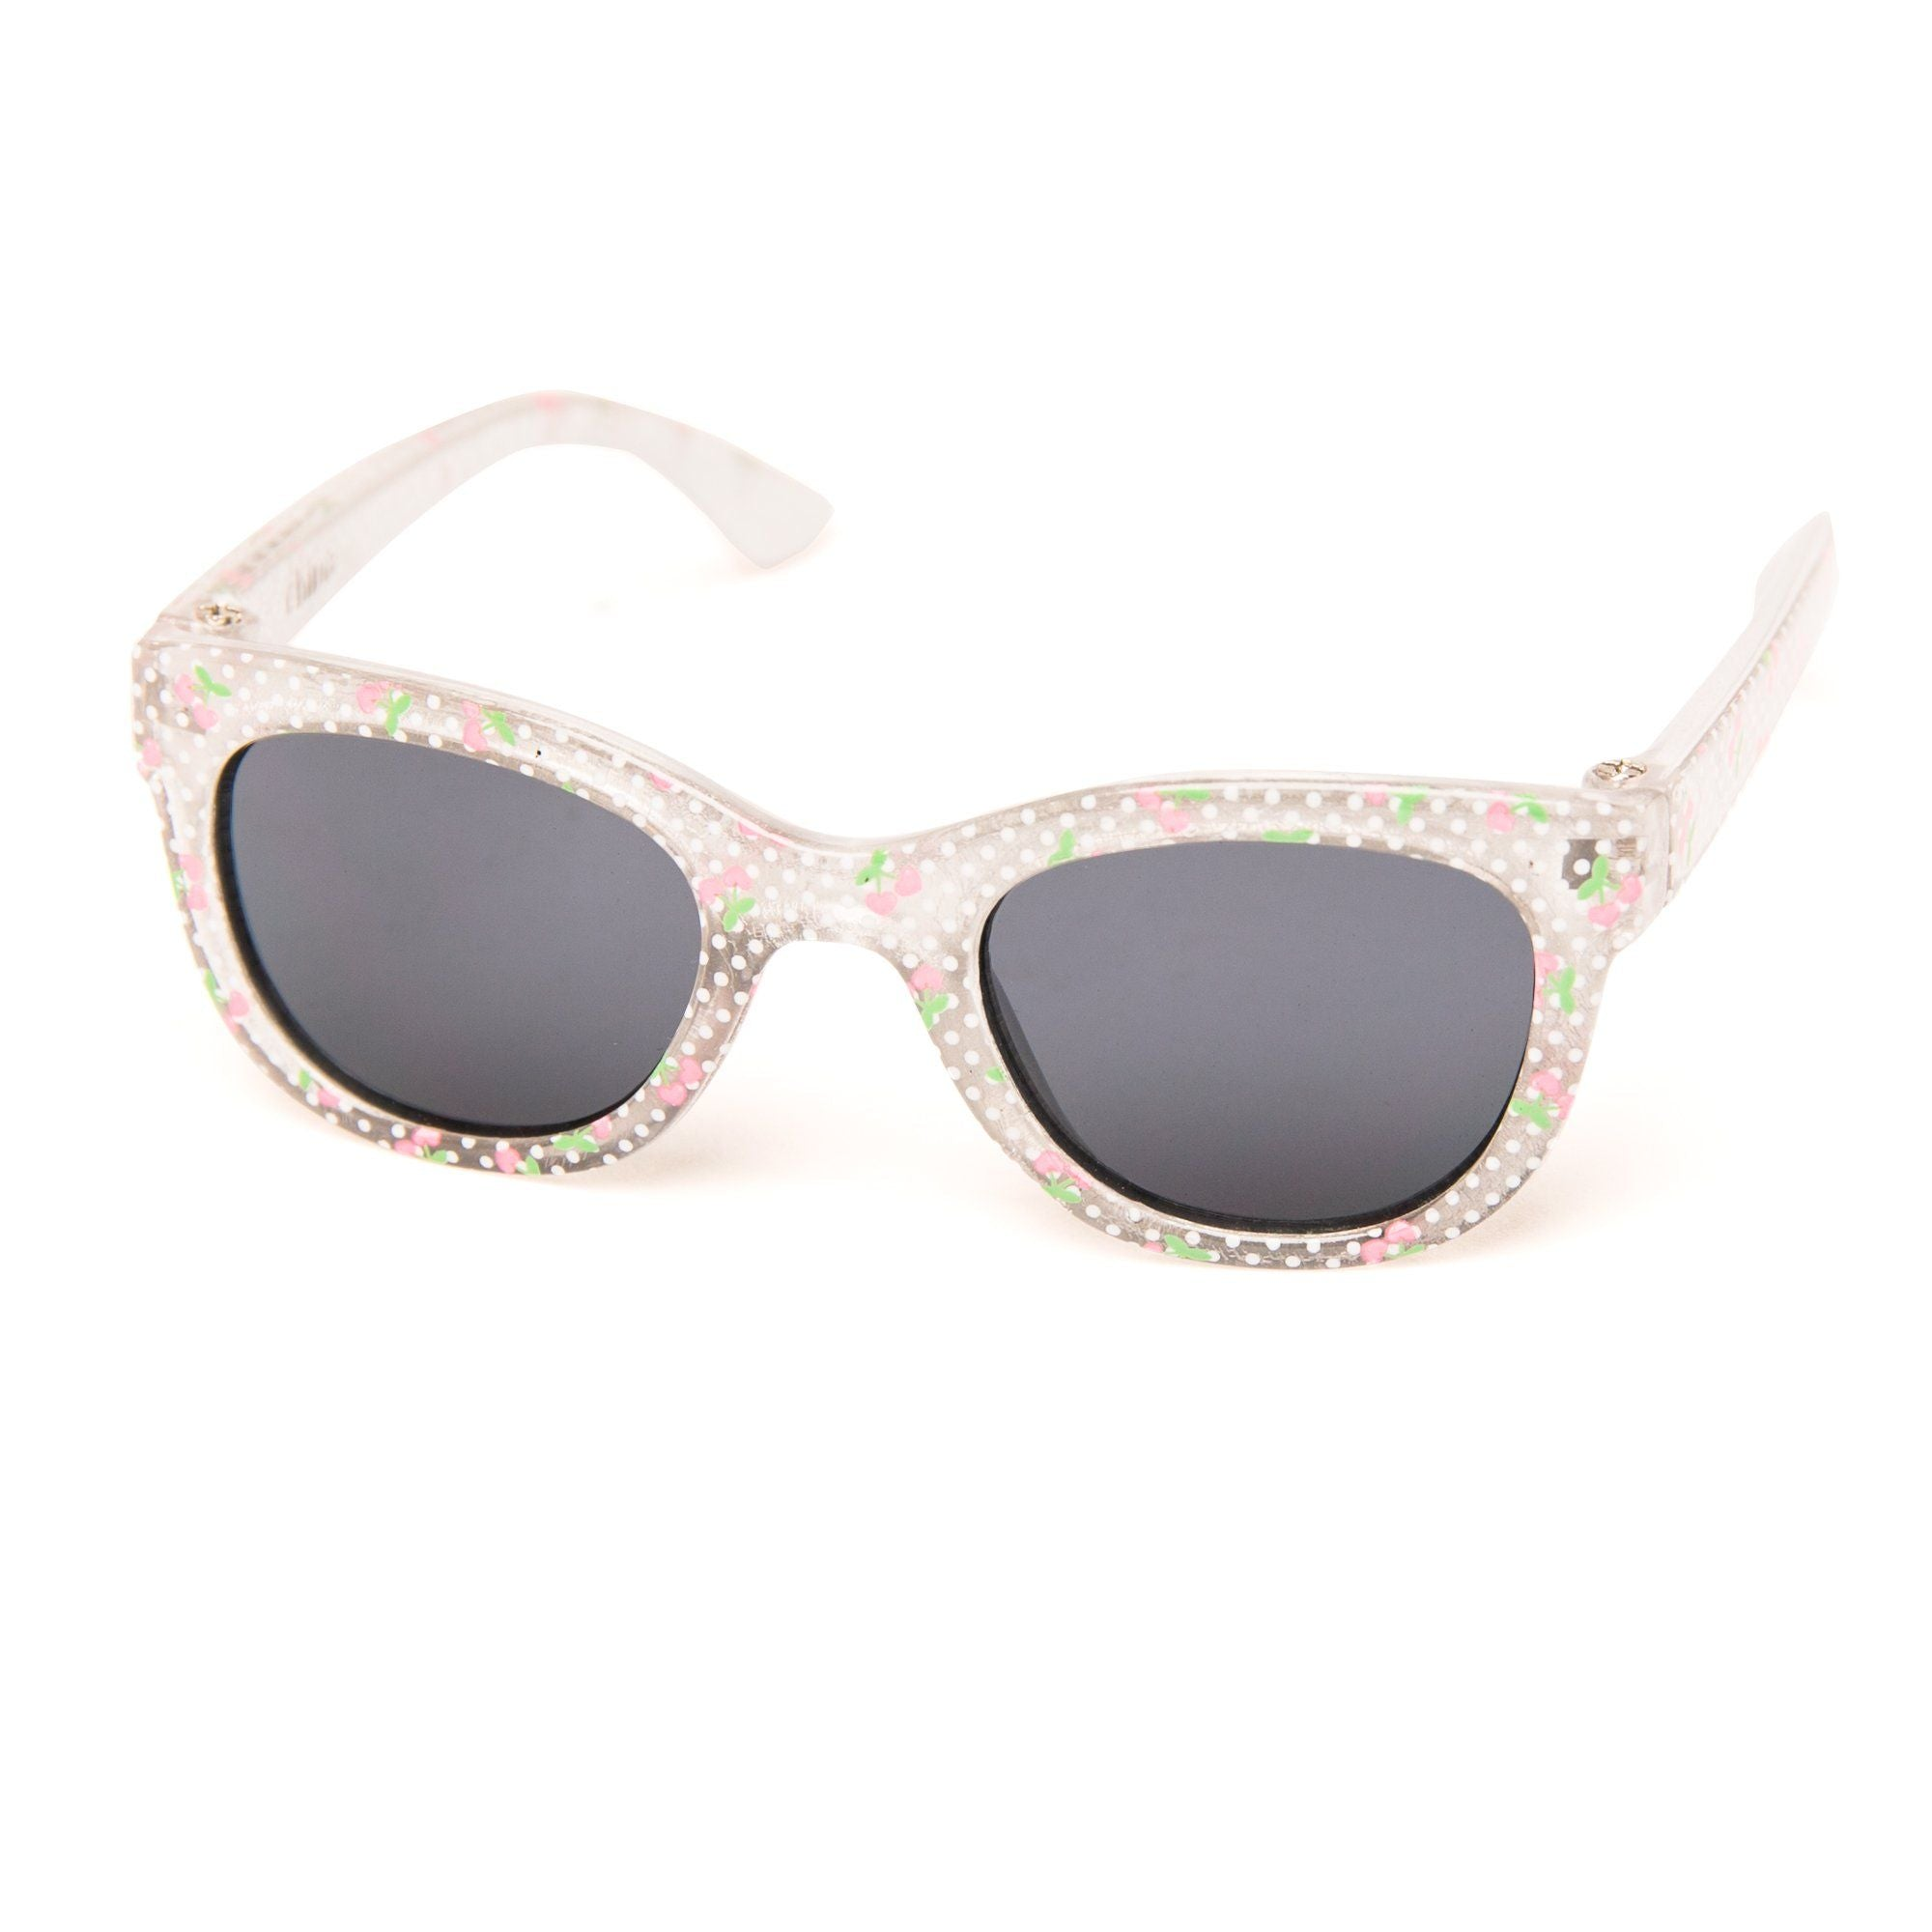 Cherry Polka Dot Sunglasses